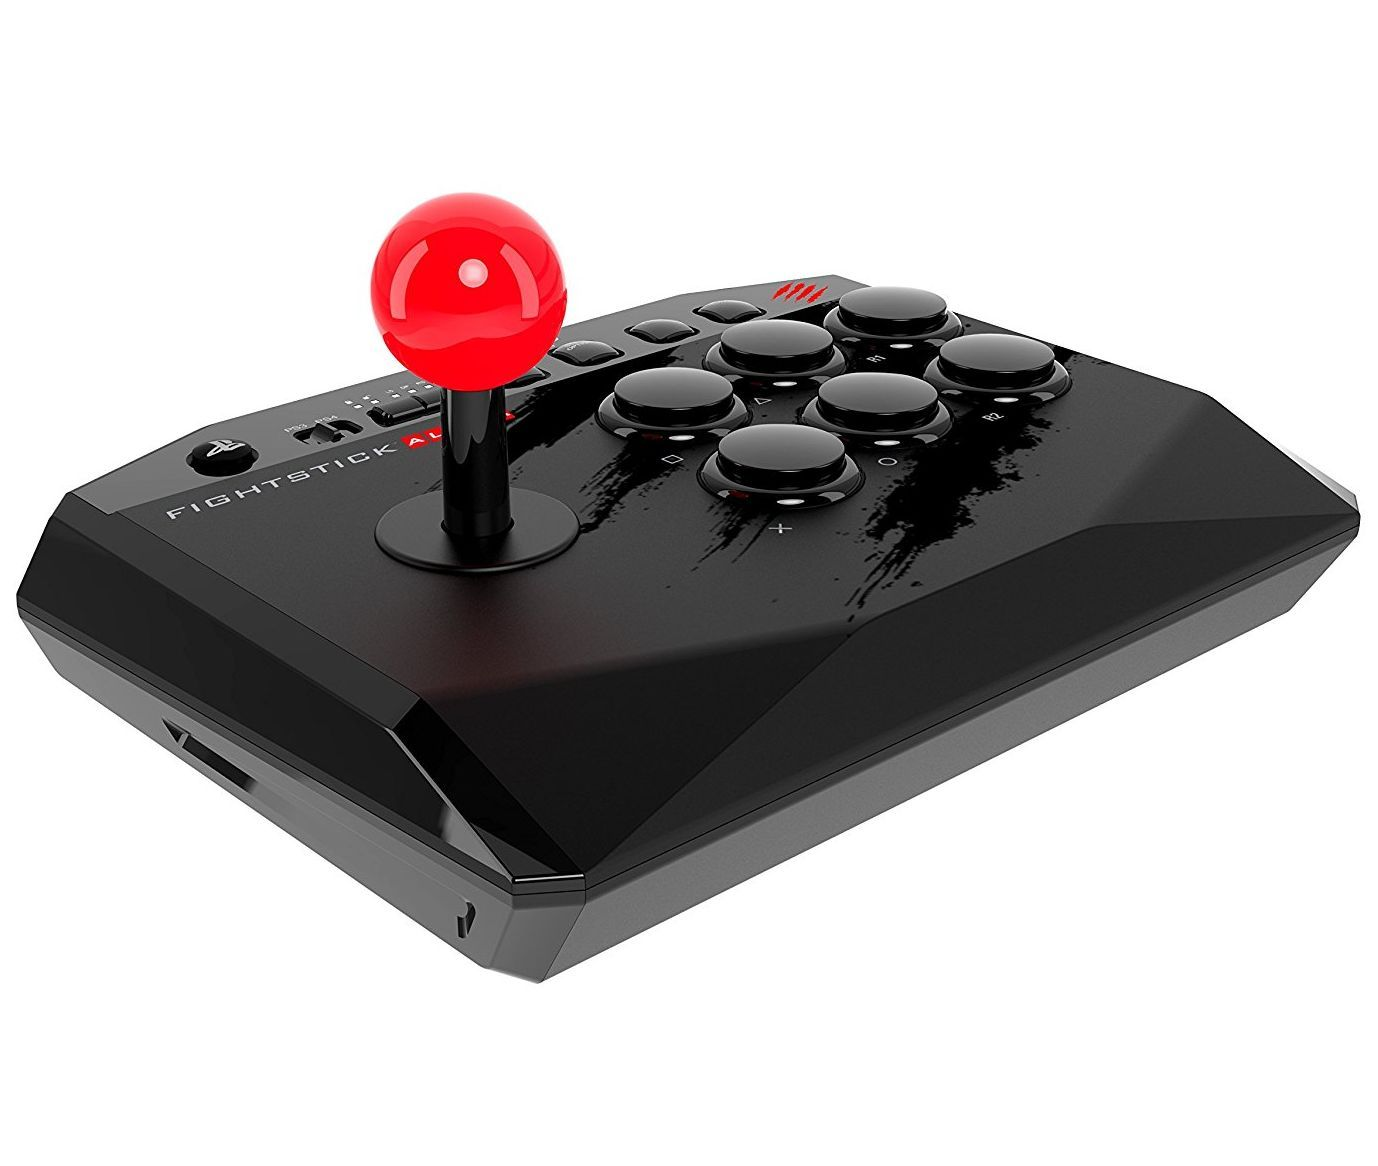 Аркейд стик Alpha Mad Catz, FightStick (PS4/PS3) - 1